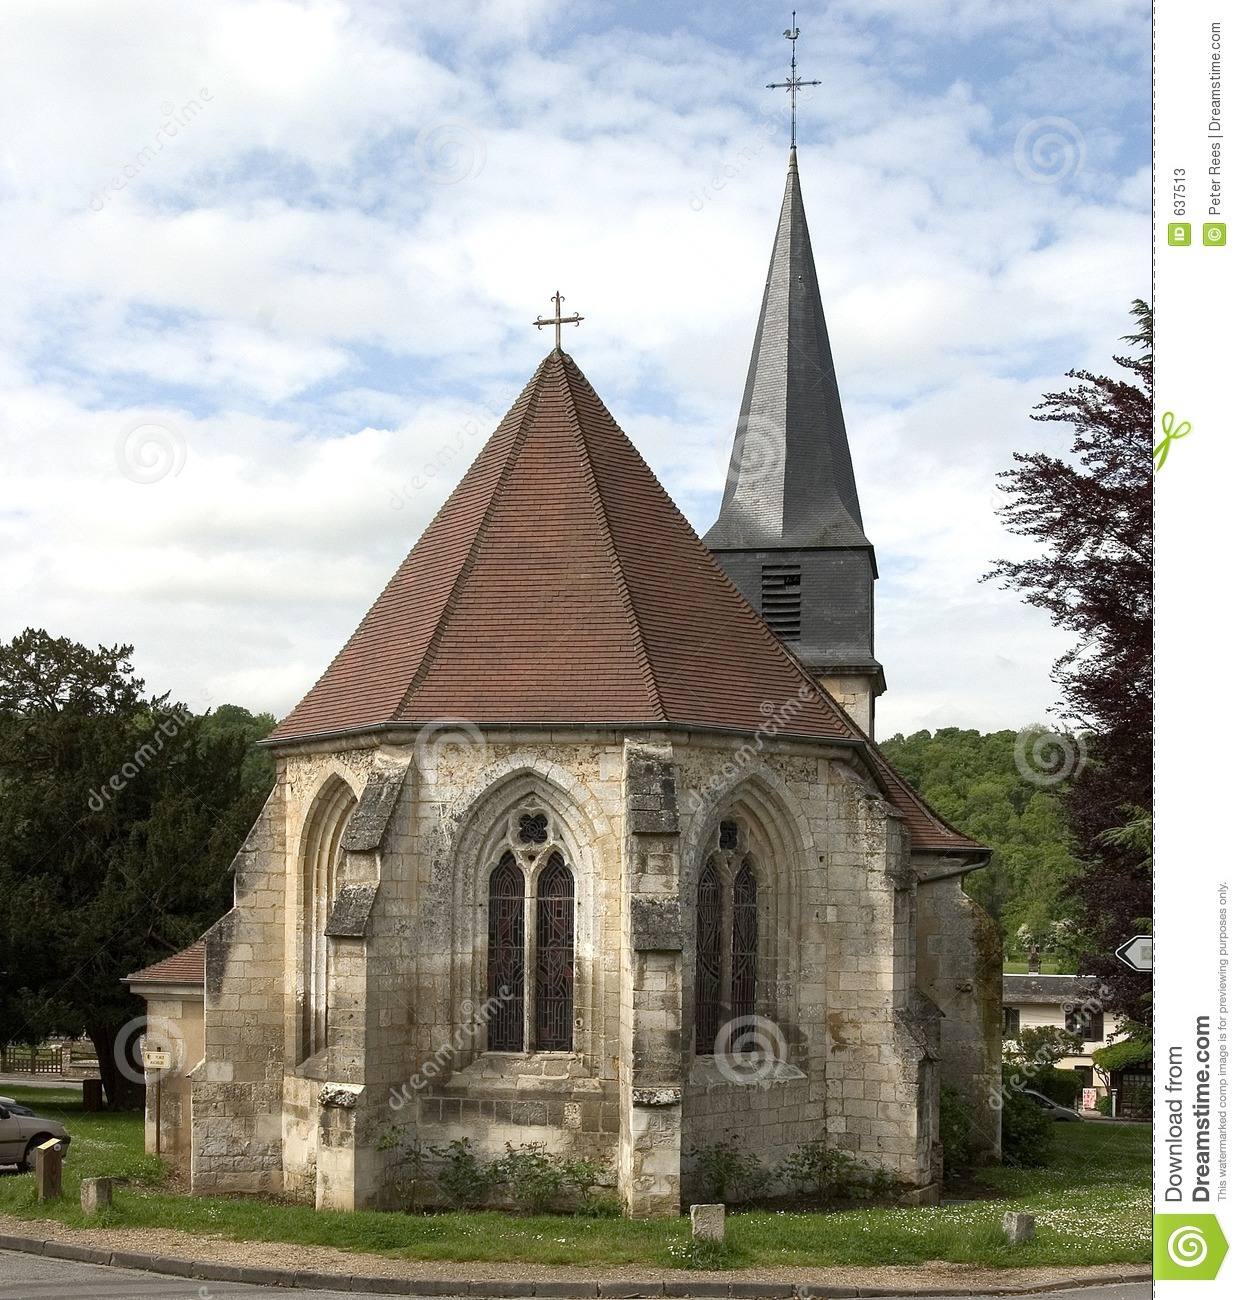 Church in the village of Le Bec-Hellouin, Normandy, France.